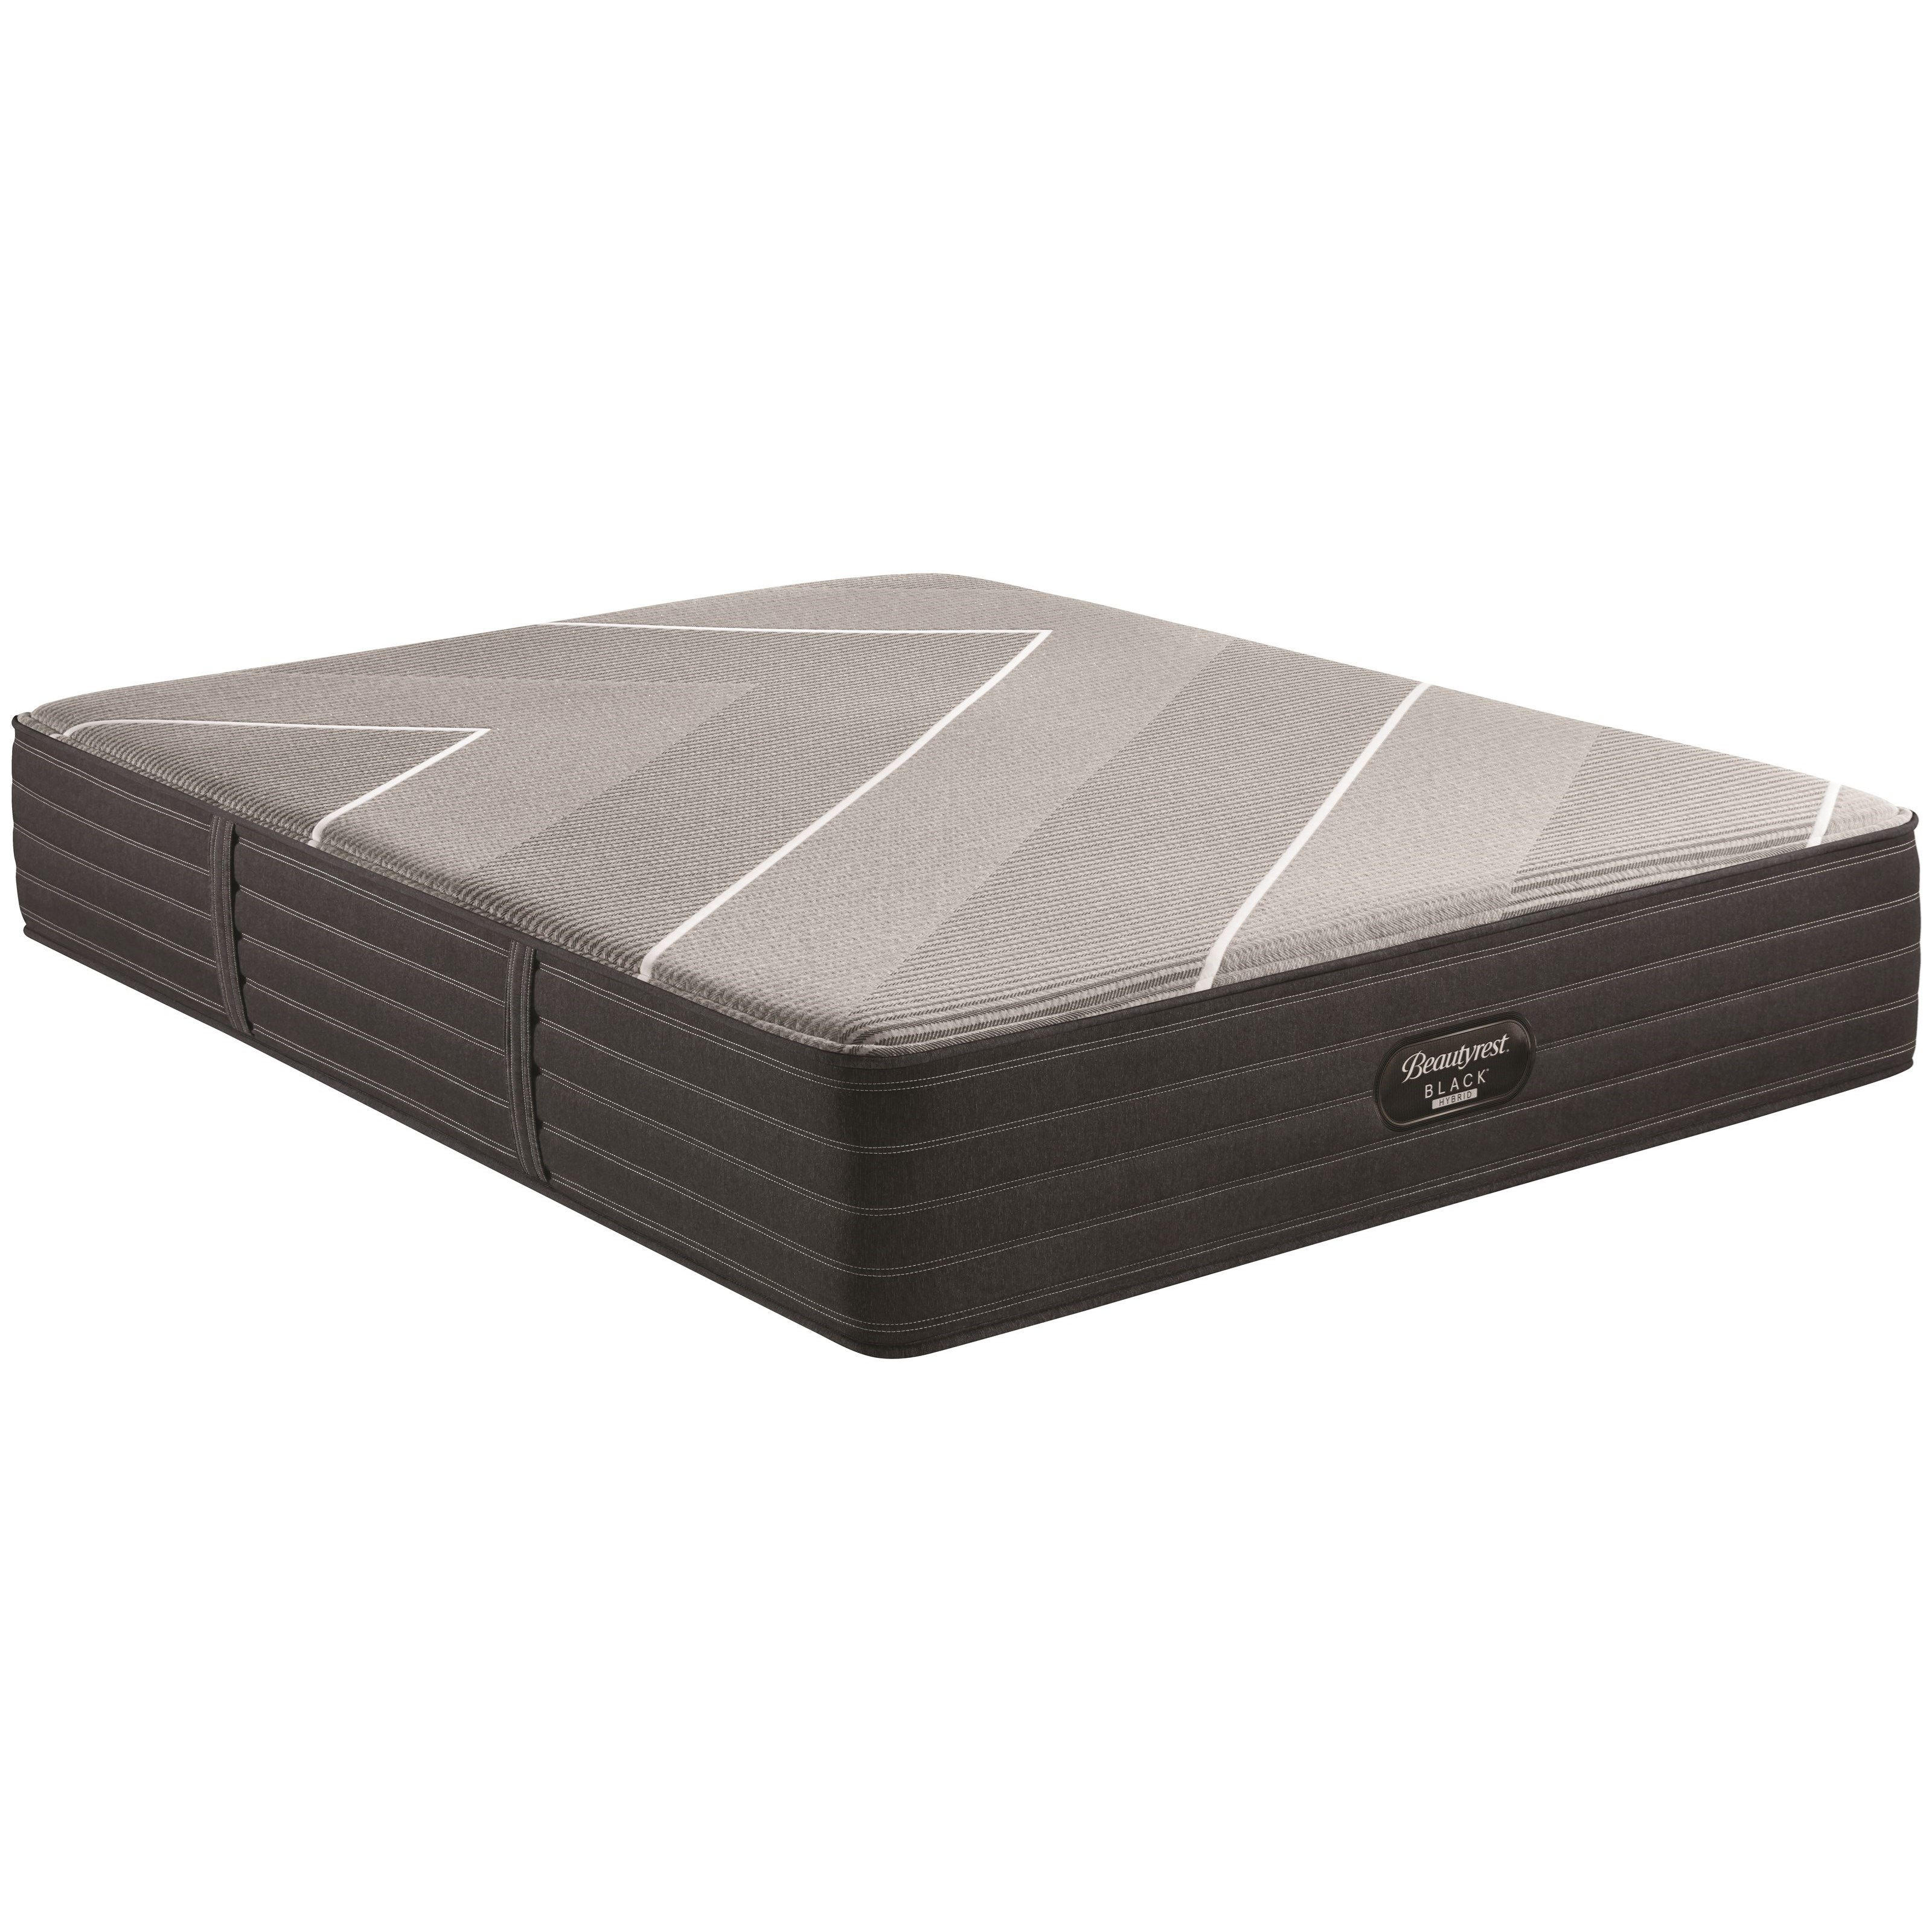 "X-Class Hybrid Medium Queen 13 1/2"" Medium Feel Hybrid Mattress by Beautyrest at Morris Home"